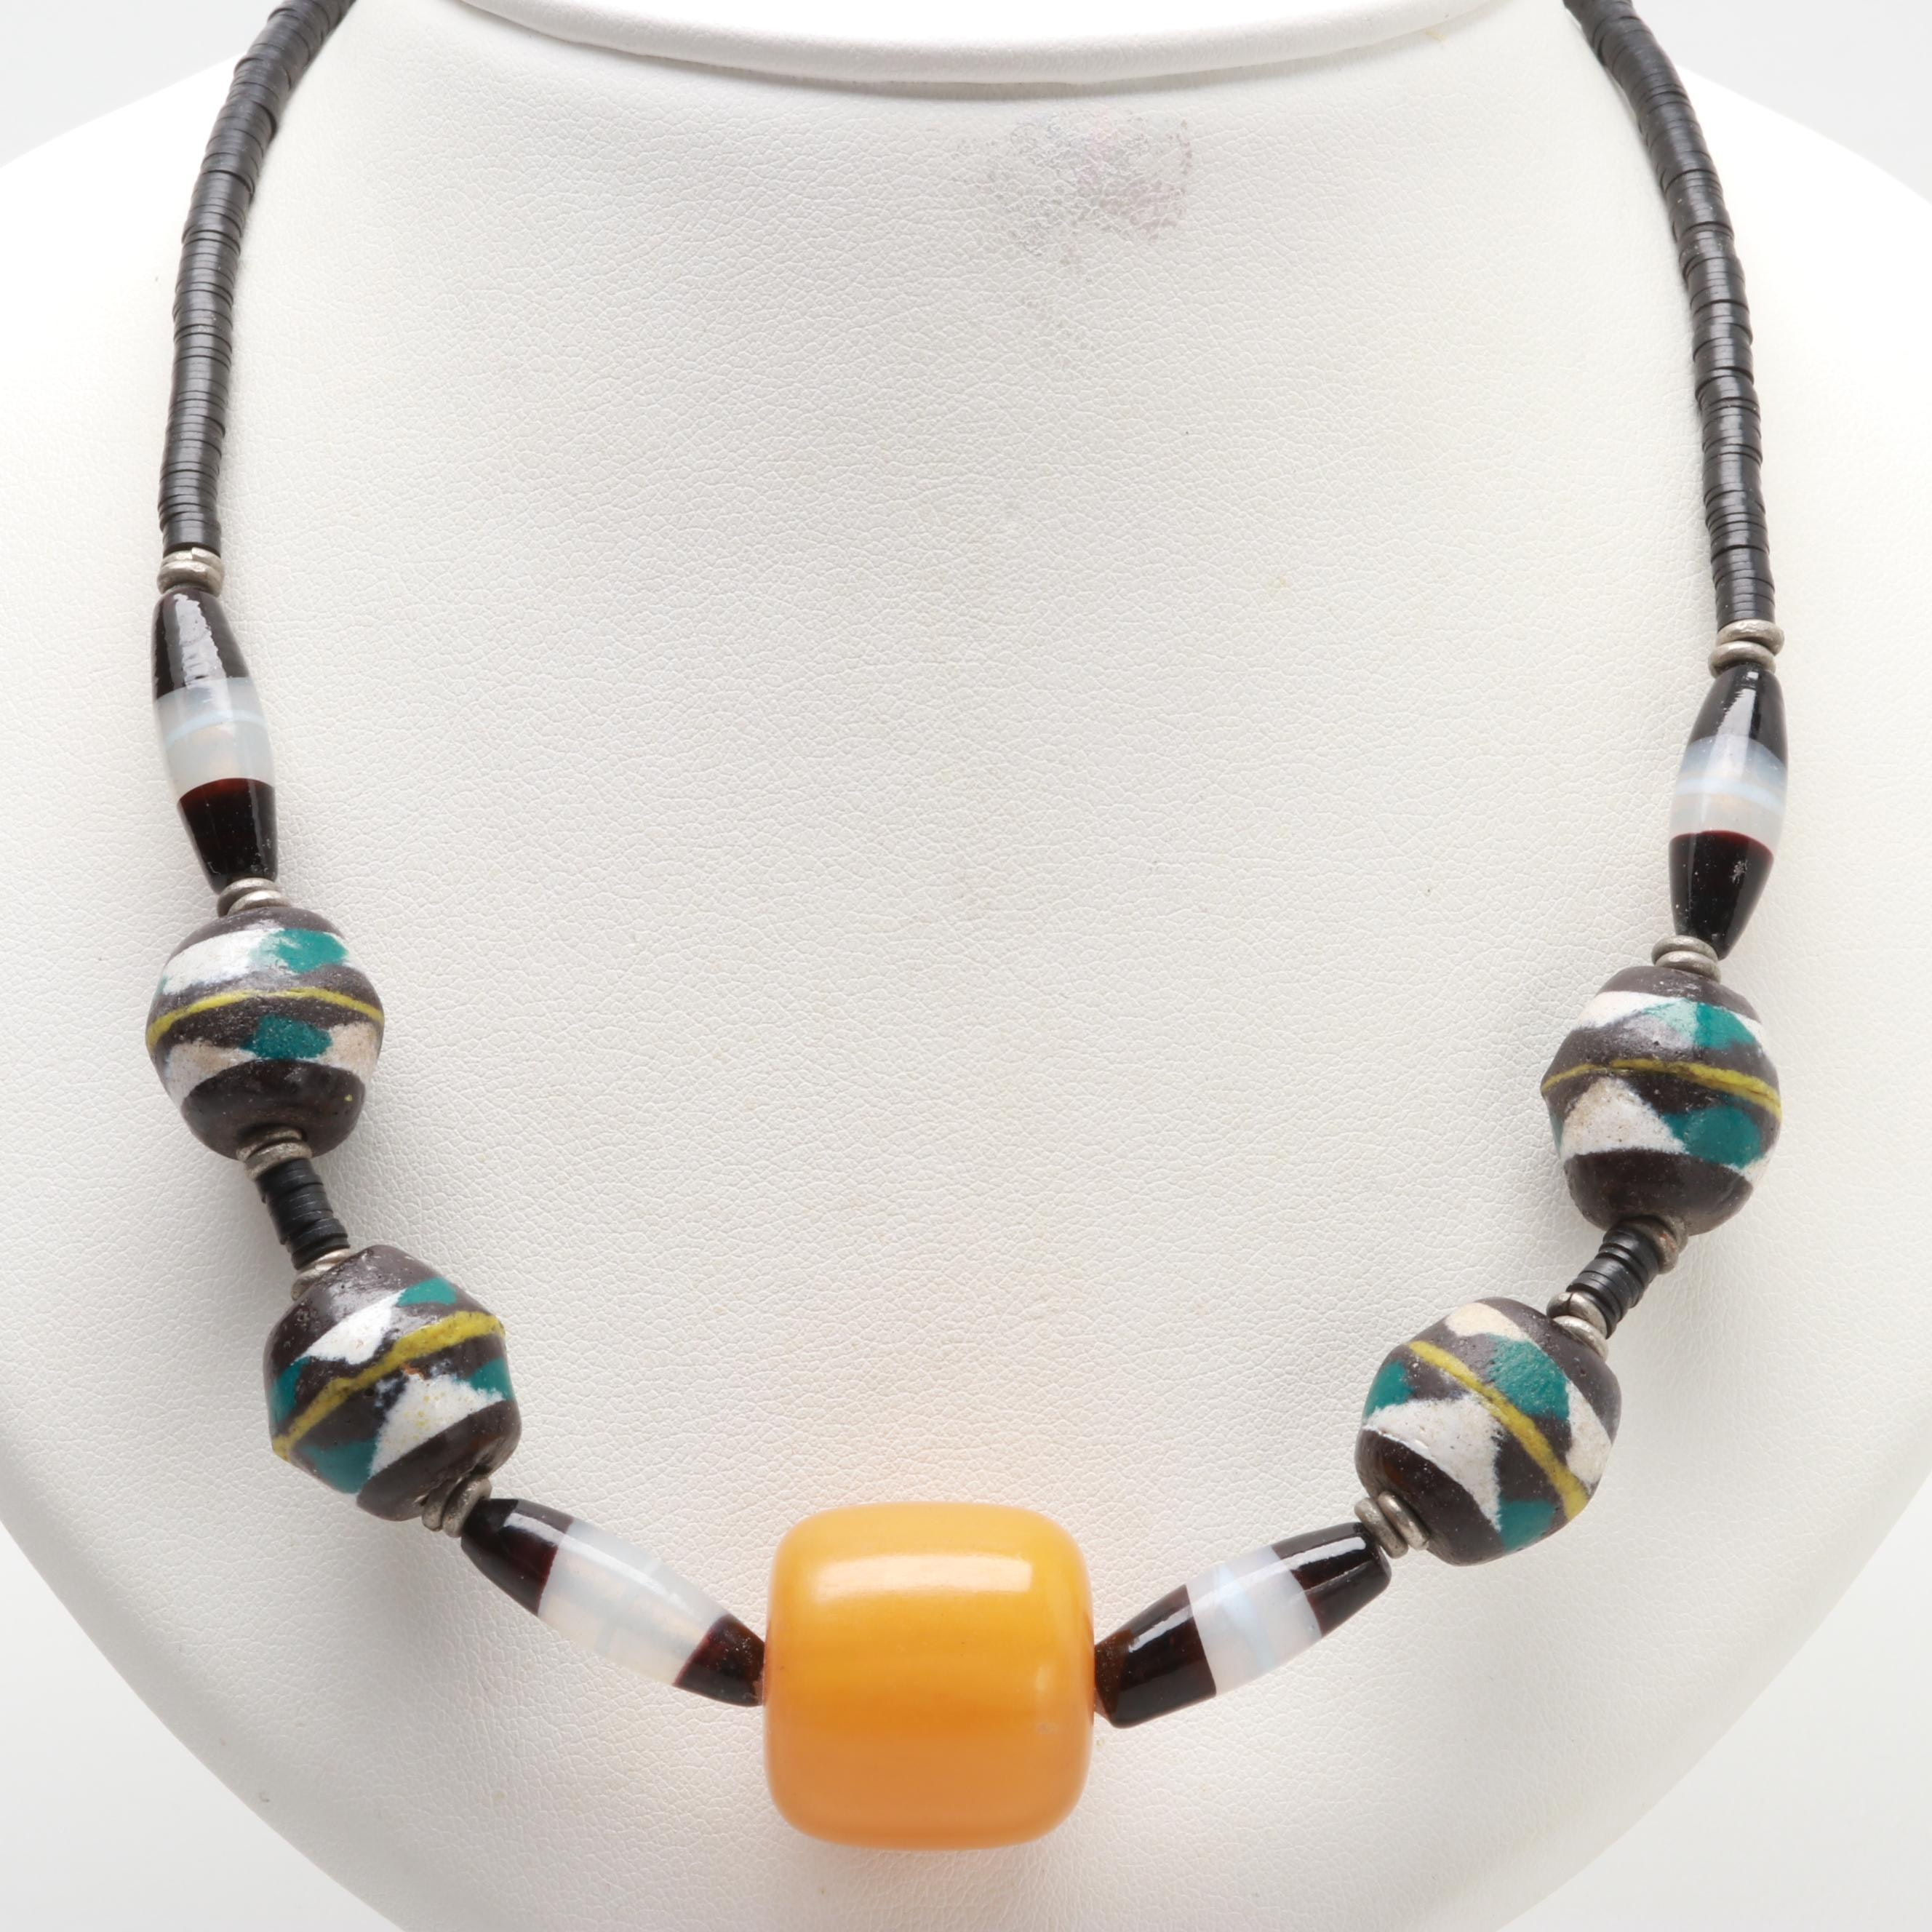 Gold Tone Glass and Resin Beaded Necklace